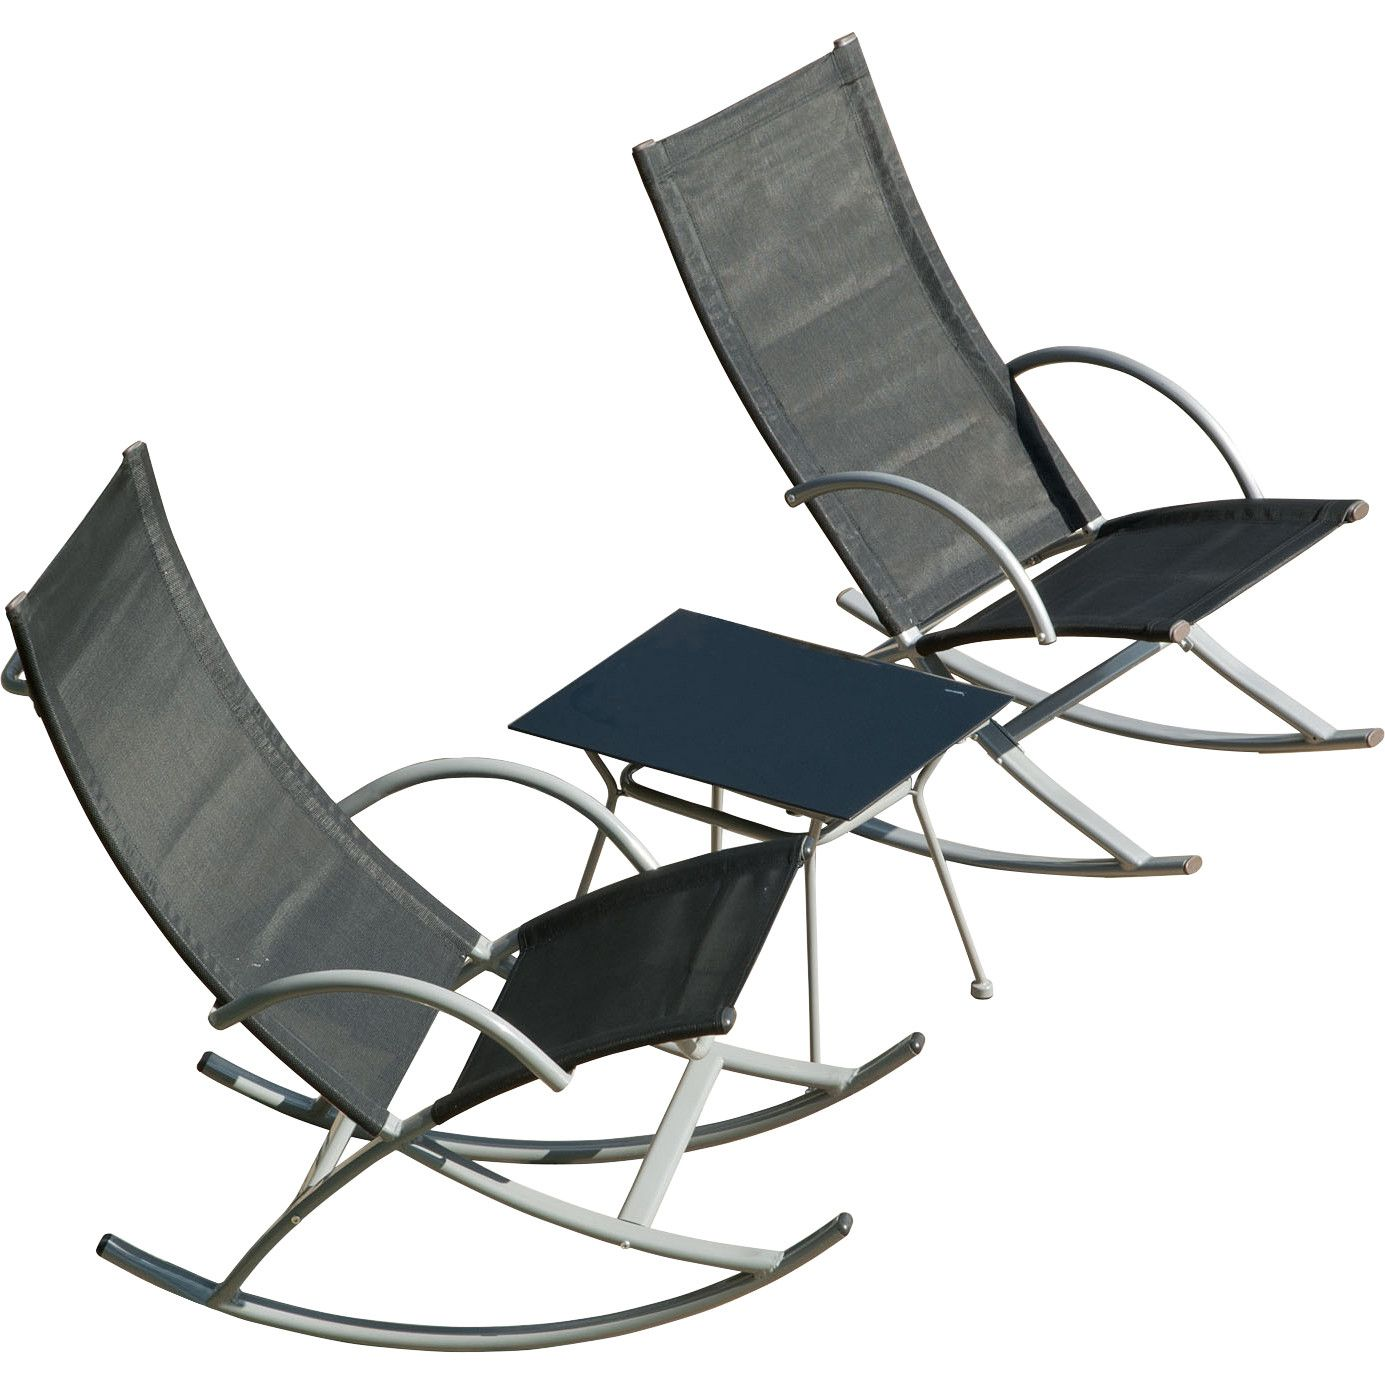 SunTime Outdoor Living 3 Piece Rocking Chair Seating Group | Terrace ...